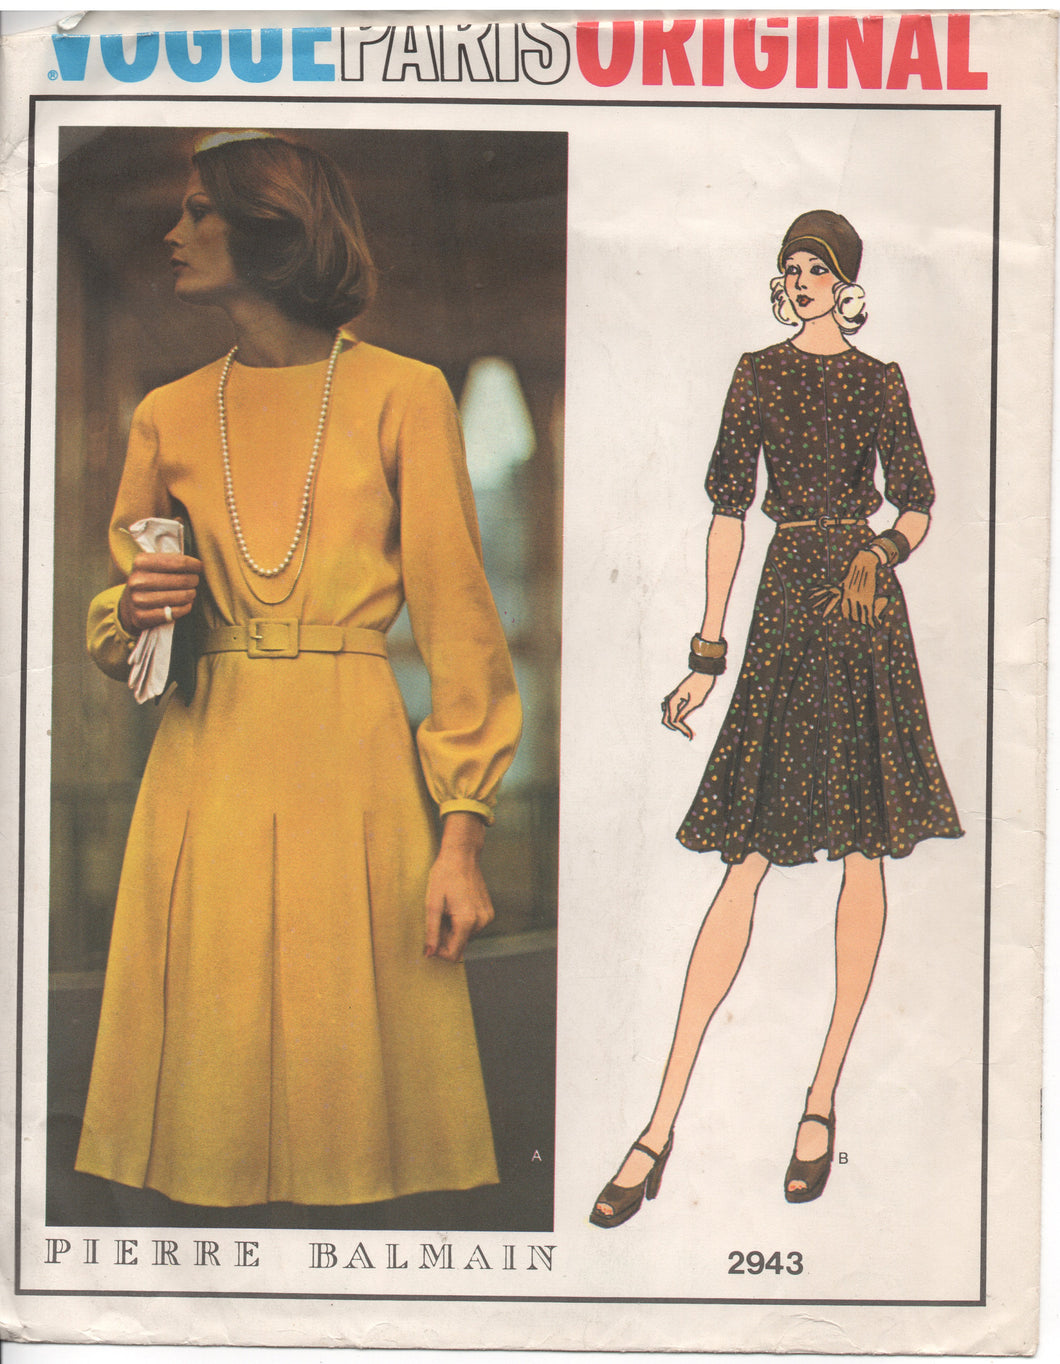 1970's Vogue Paris Original One Piece dress with flared skirt - Pierre Balmain - UC/FF - Bust 36